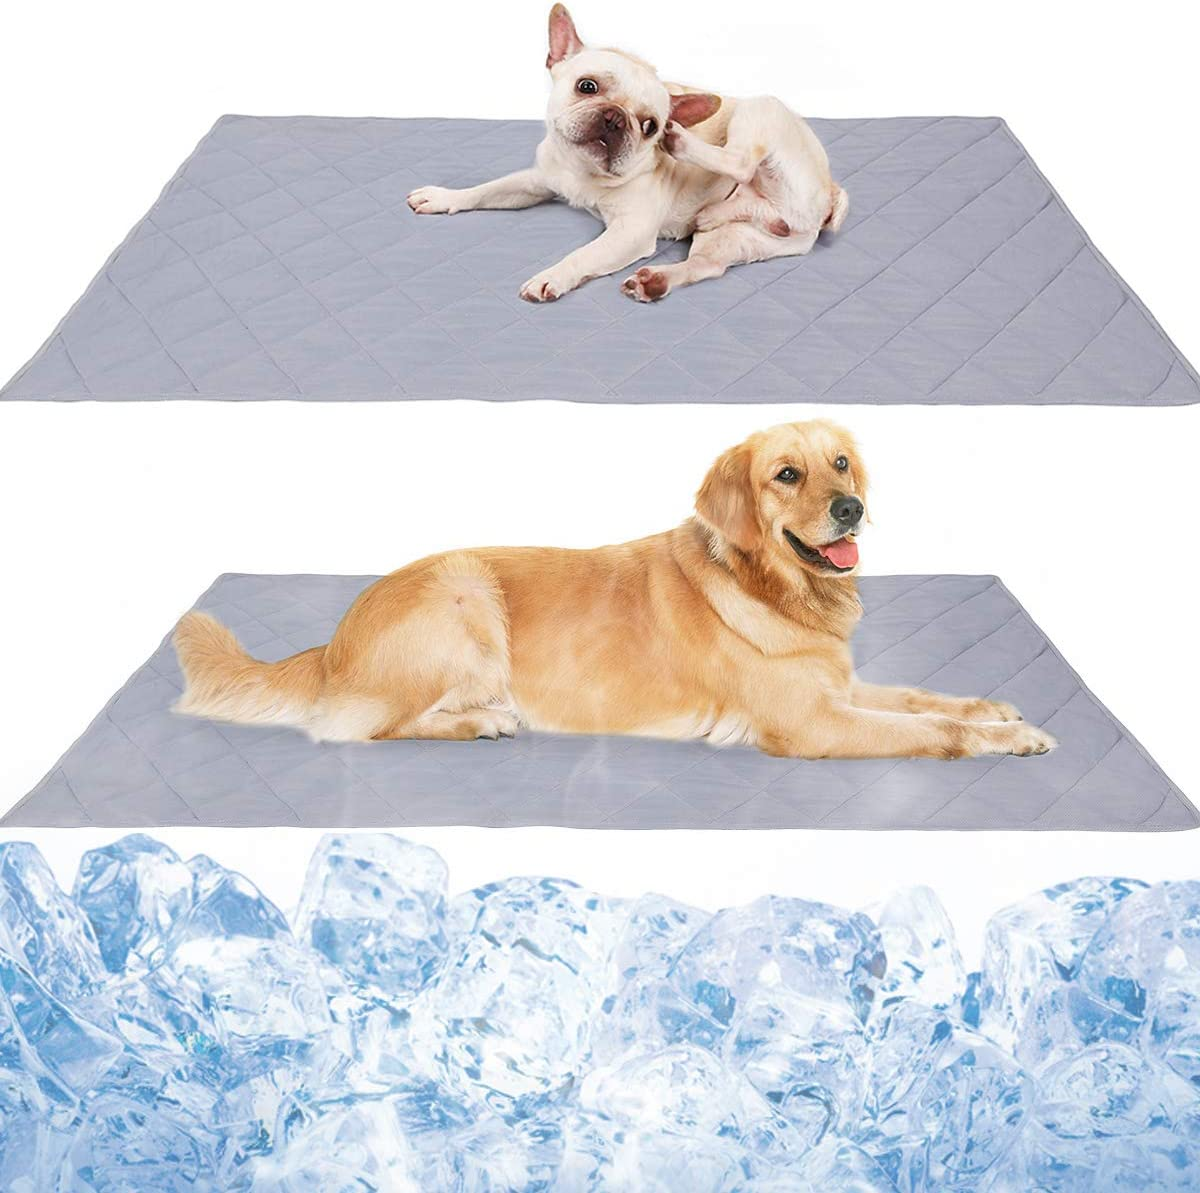 "Reversible Large Pet Cooling Mat Pad for Puppy Bulldog Boston Terrier Lab Pug Golden Retriever,Dog Cool Blanket Rug Carpet Placed on Bed Kennel Cave Machine Washable 31.5""39.4"""